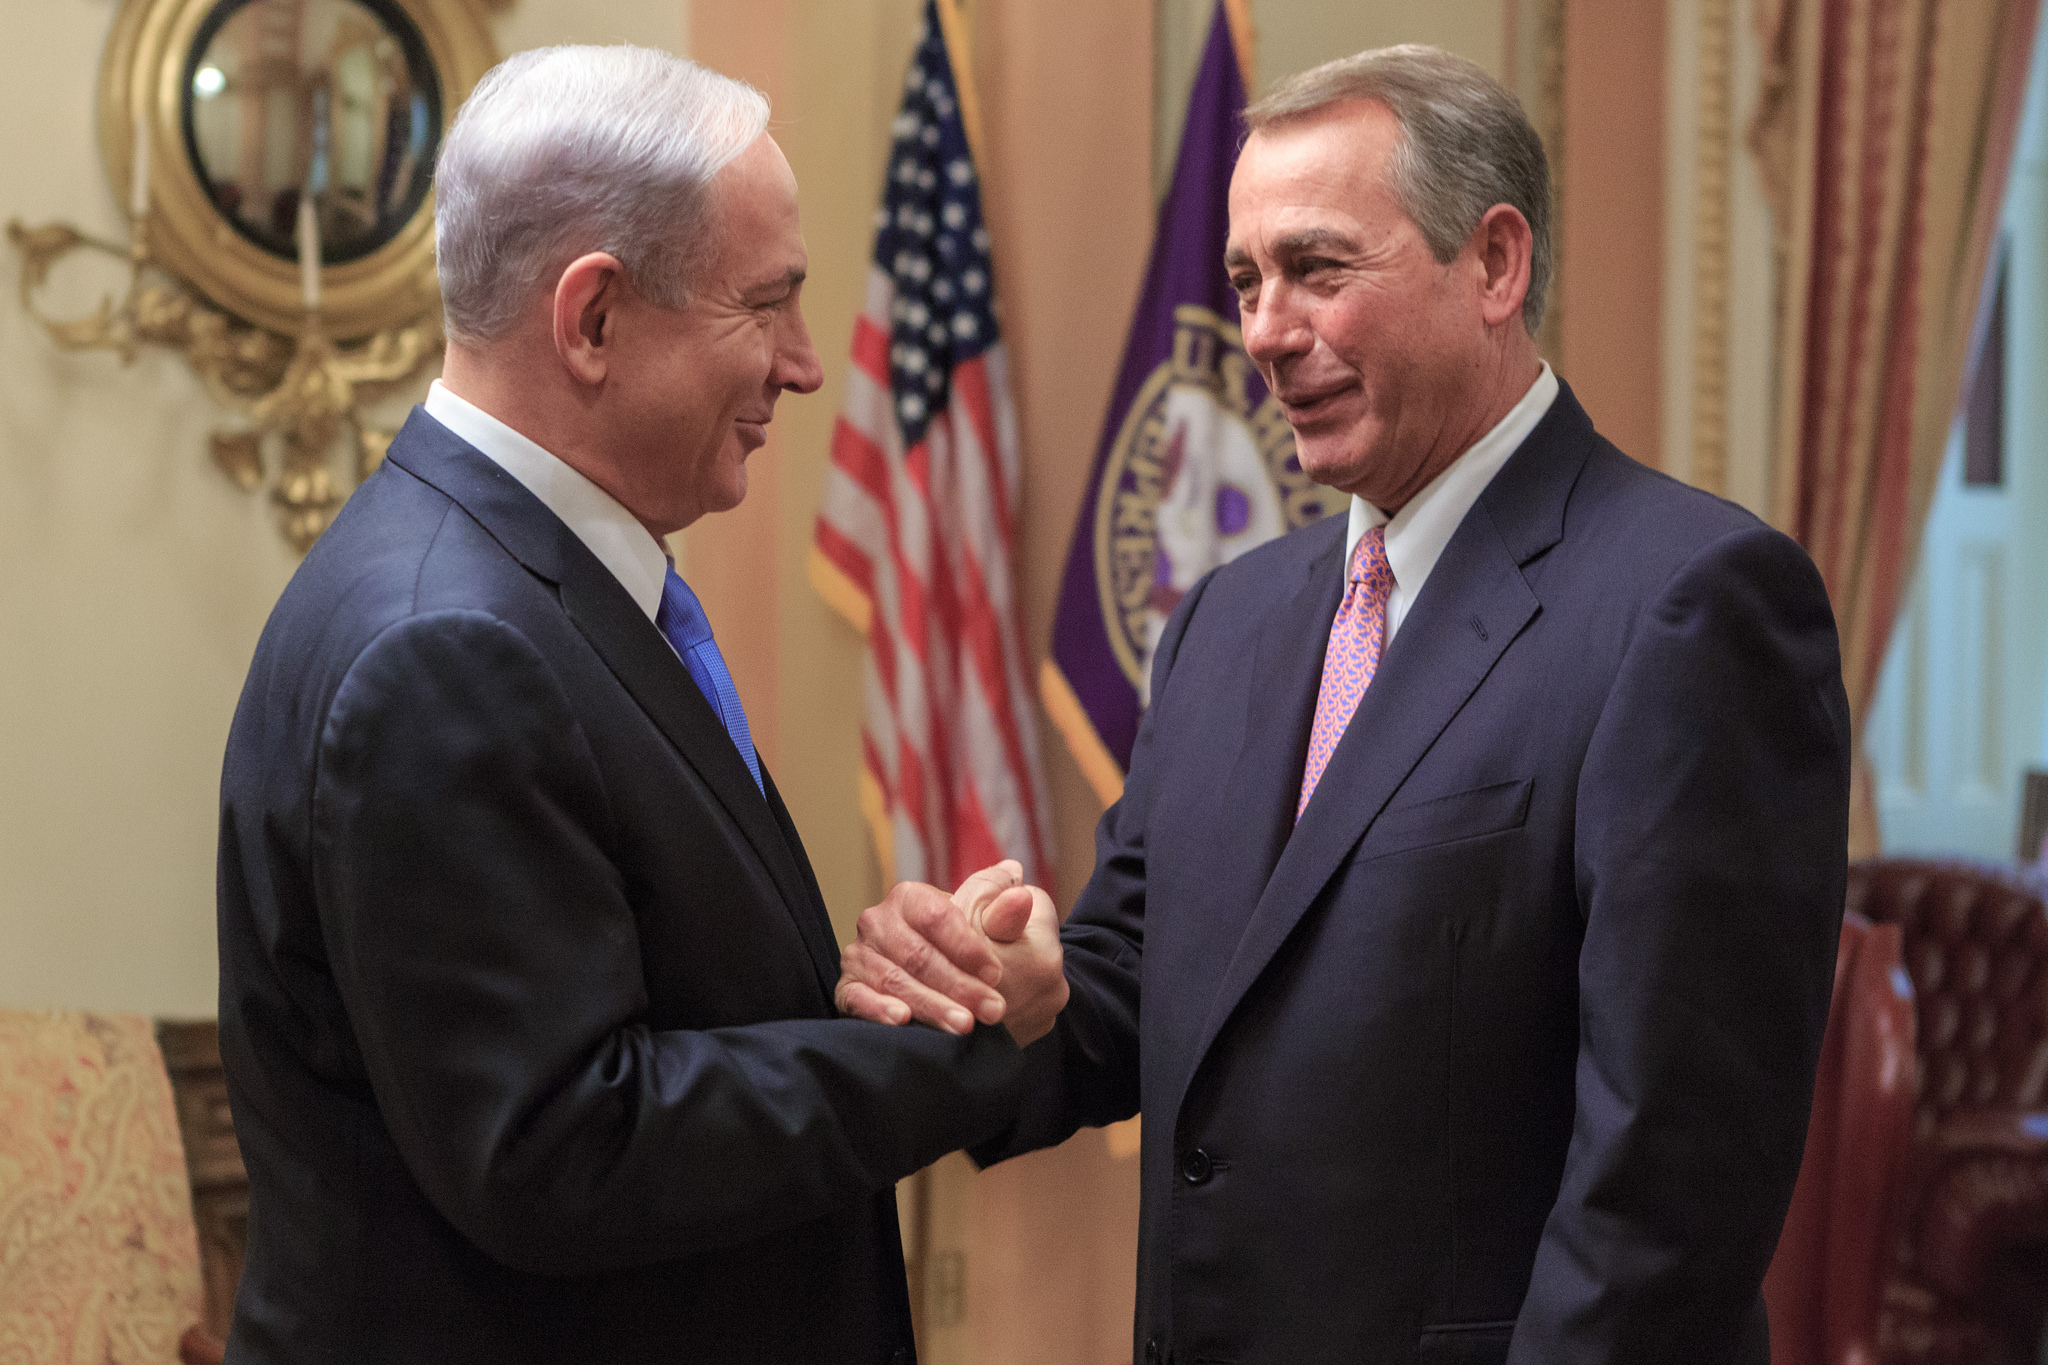 Israeli Prime Minister Benjamin Netanyahu embraces Speaker of the House John Boehner. By Speaker John Boehner.